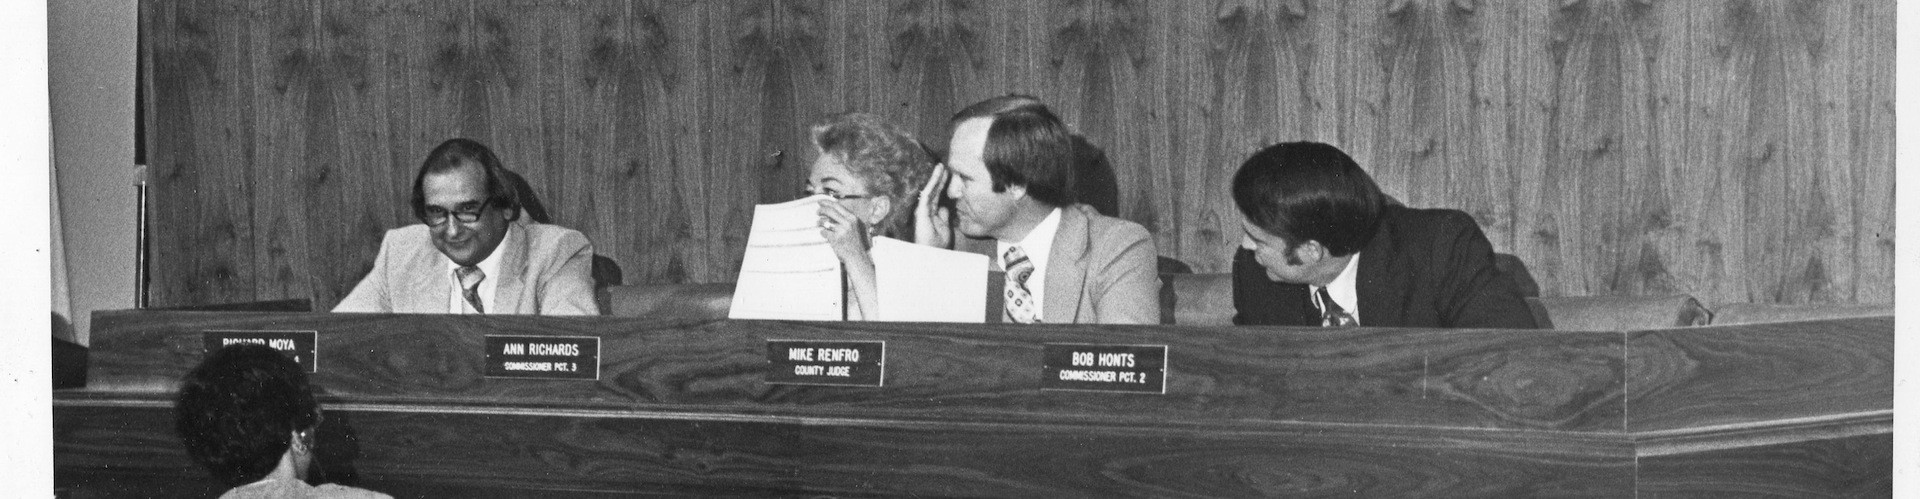 The Travis County Commissioners Court in the 1980s